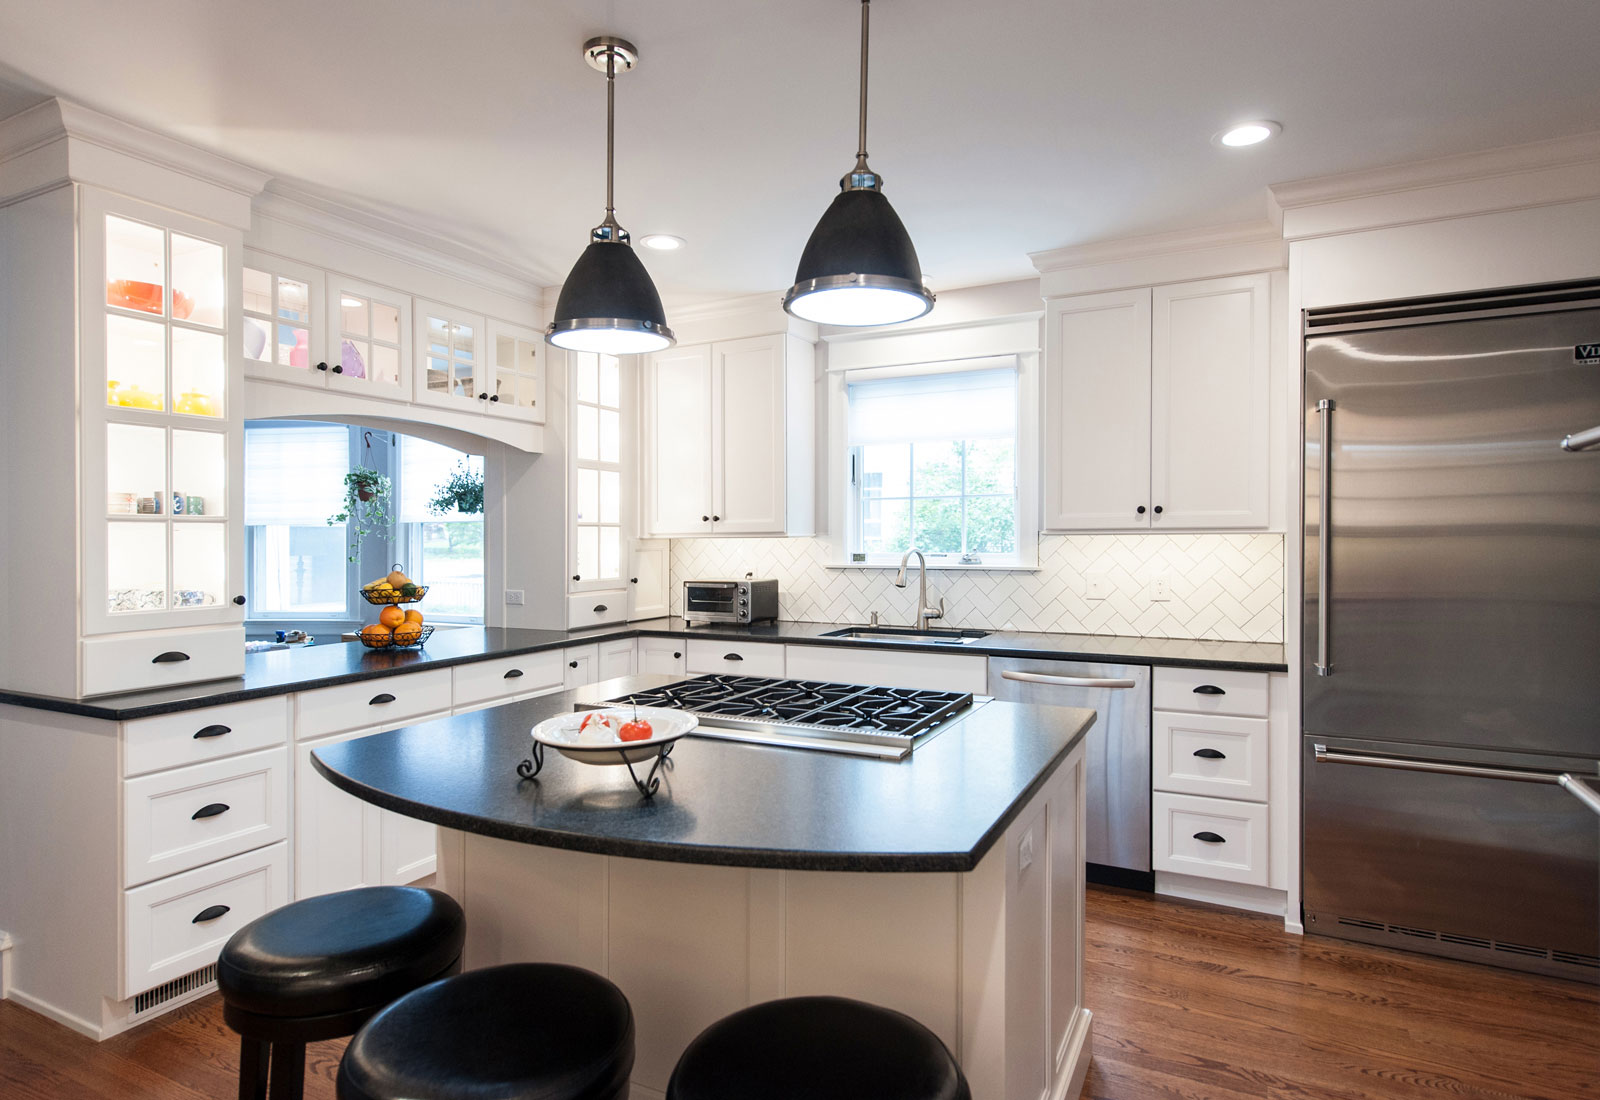 Kitchens   R. Craig Lord Construction Co.